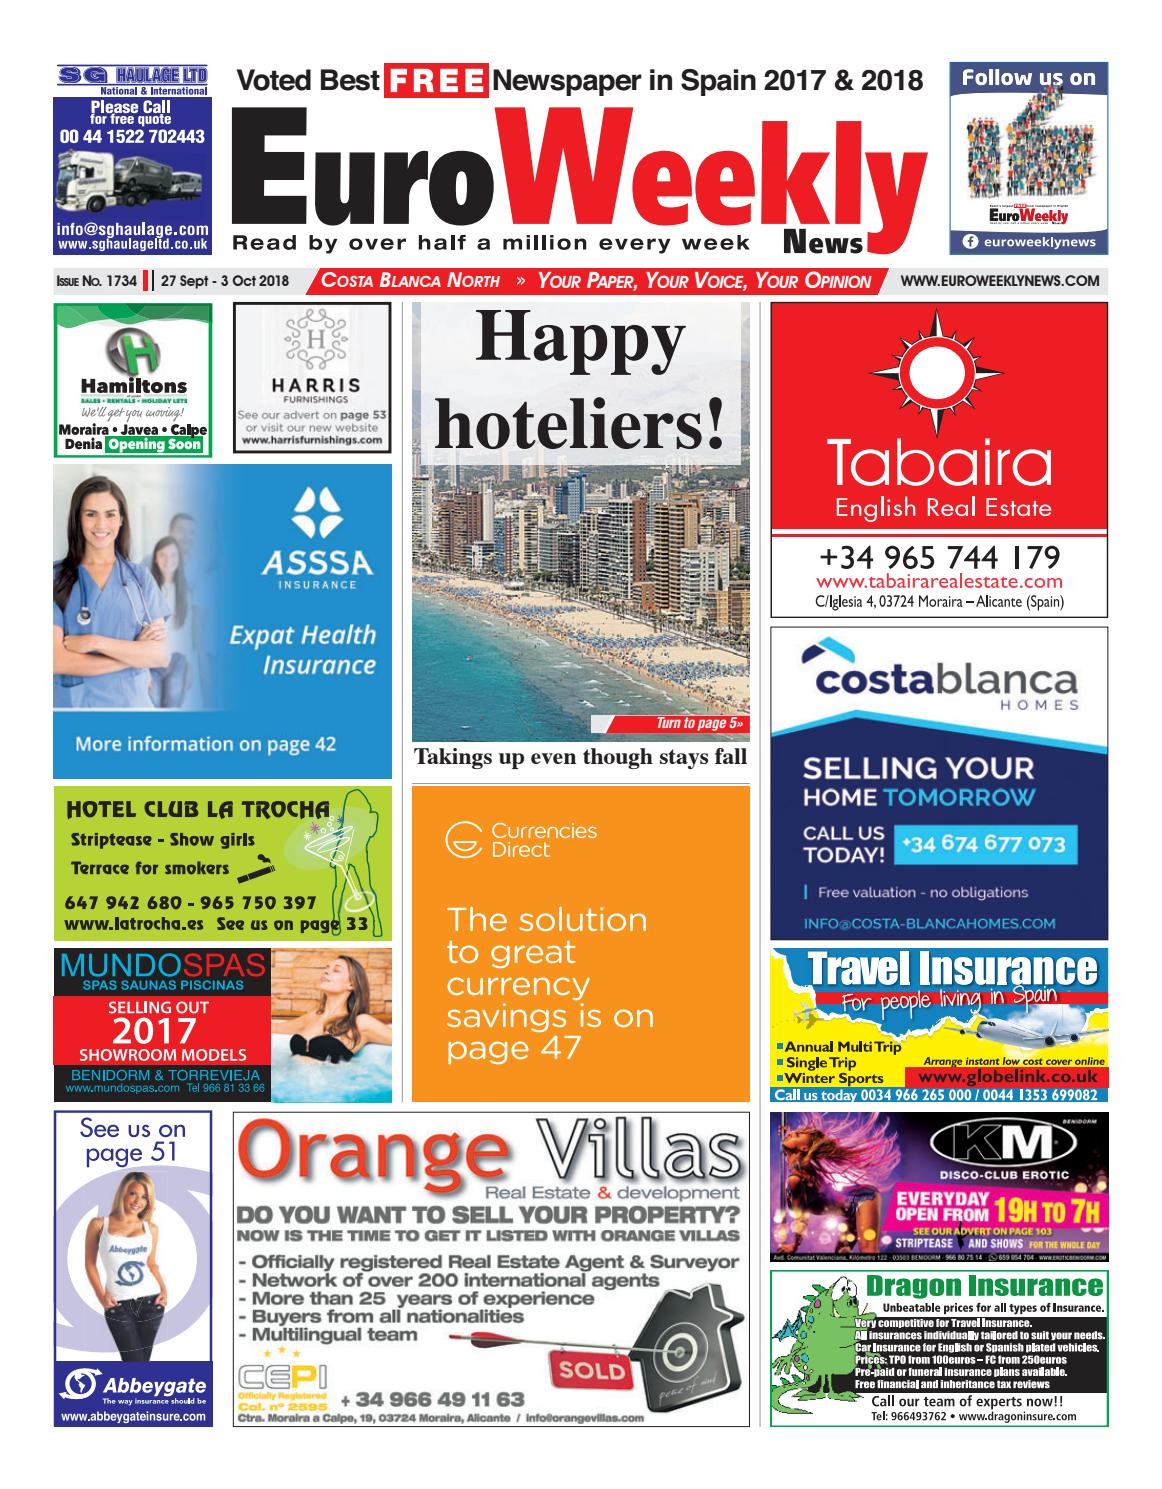 f0f5bfa9f21 Euro Weekly News - Costa Blanca North 27 September - 3 October 2018 Issue  1734 by Euro Weekly News Media S.A. - issuu